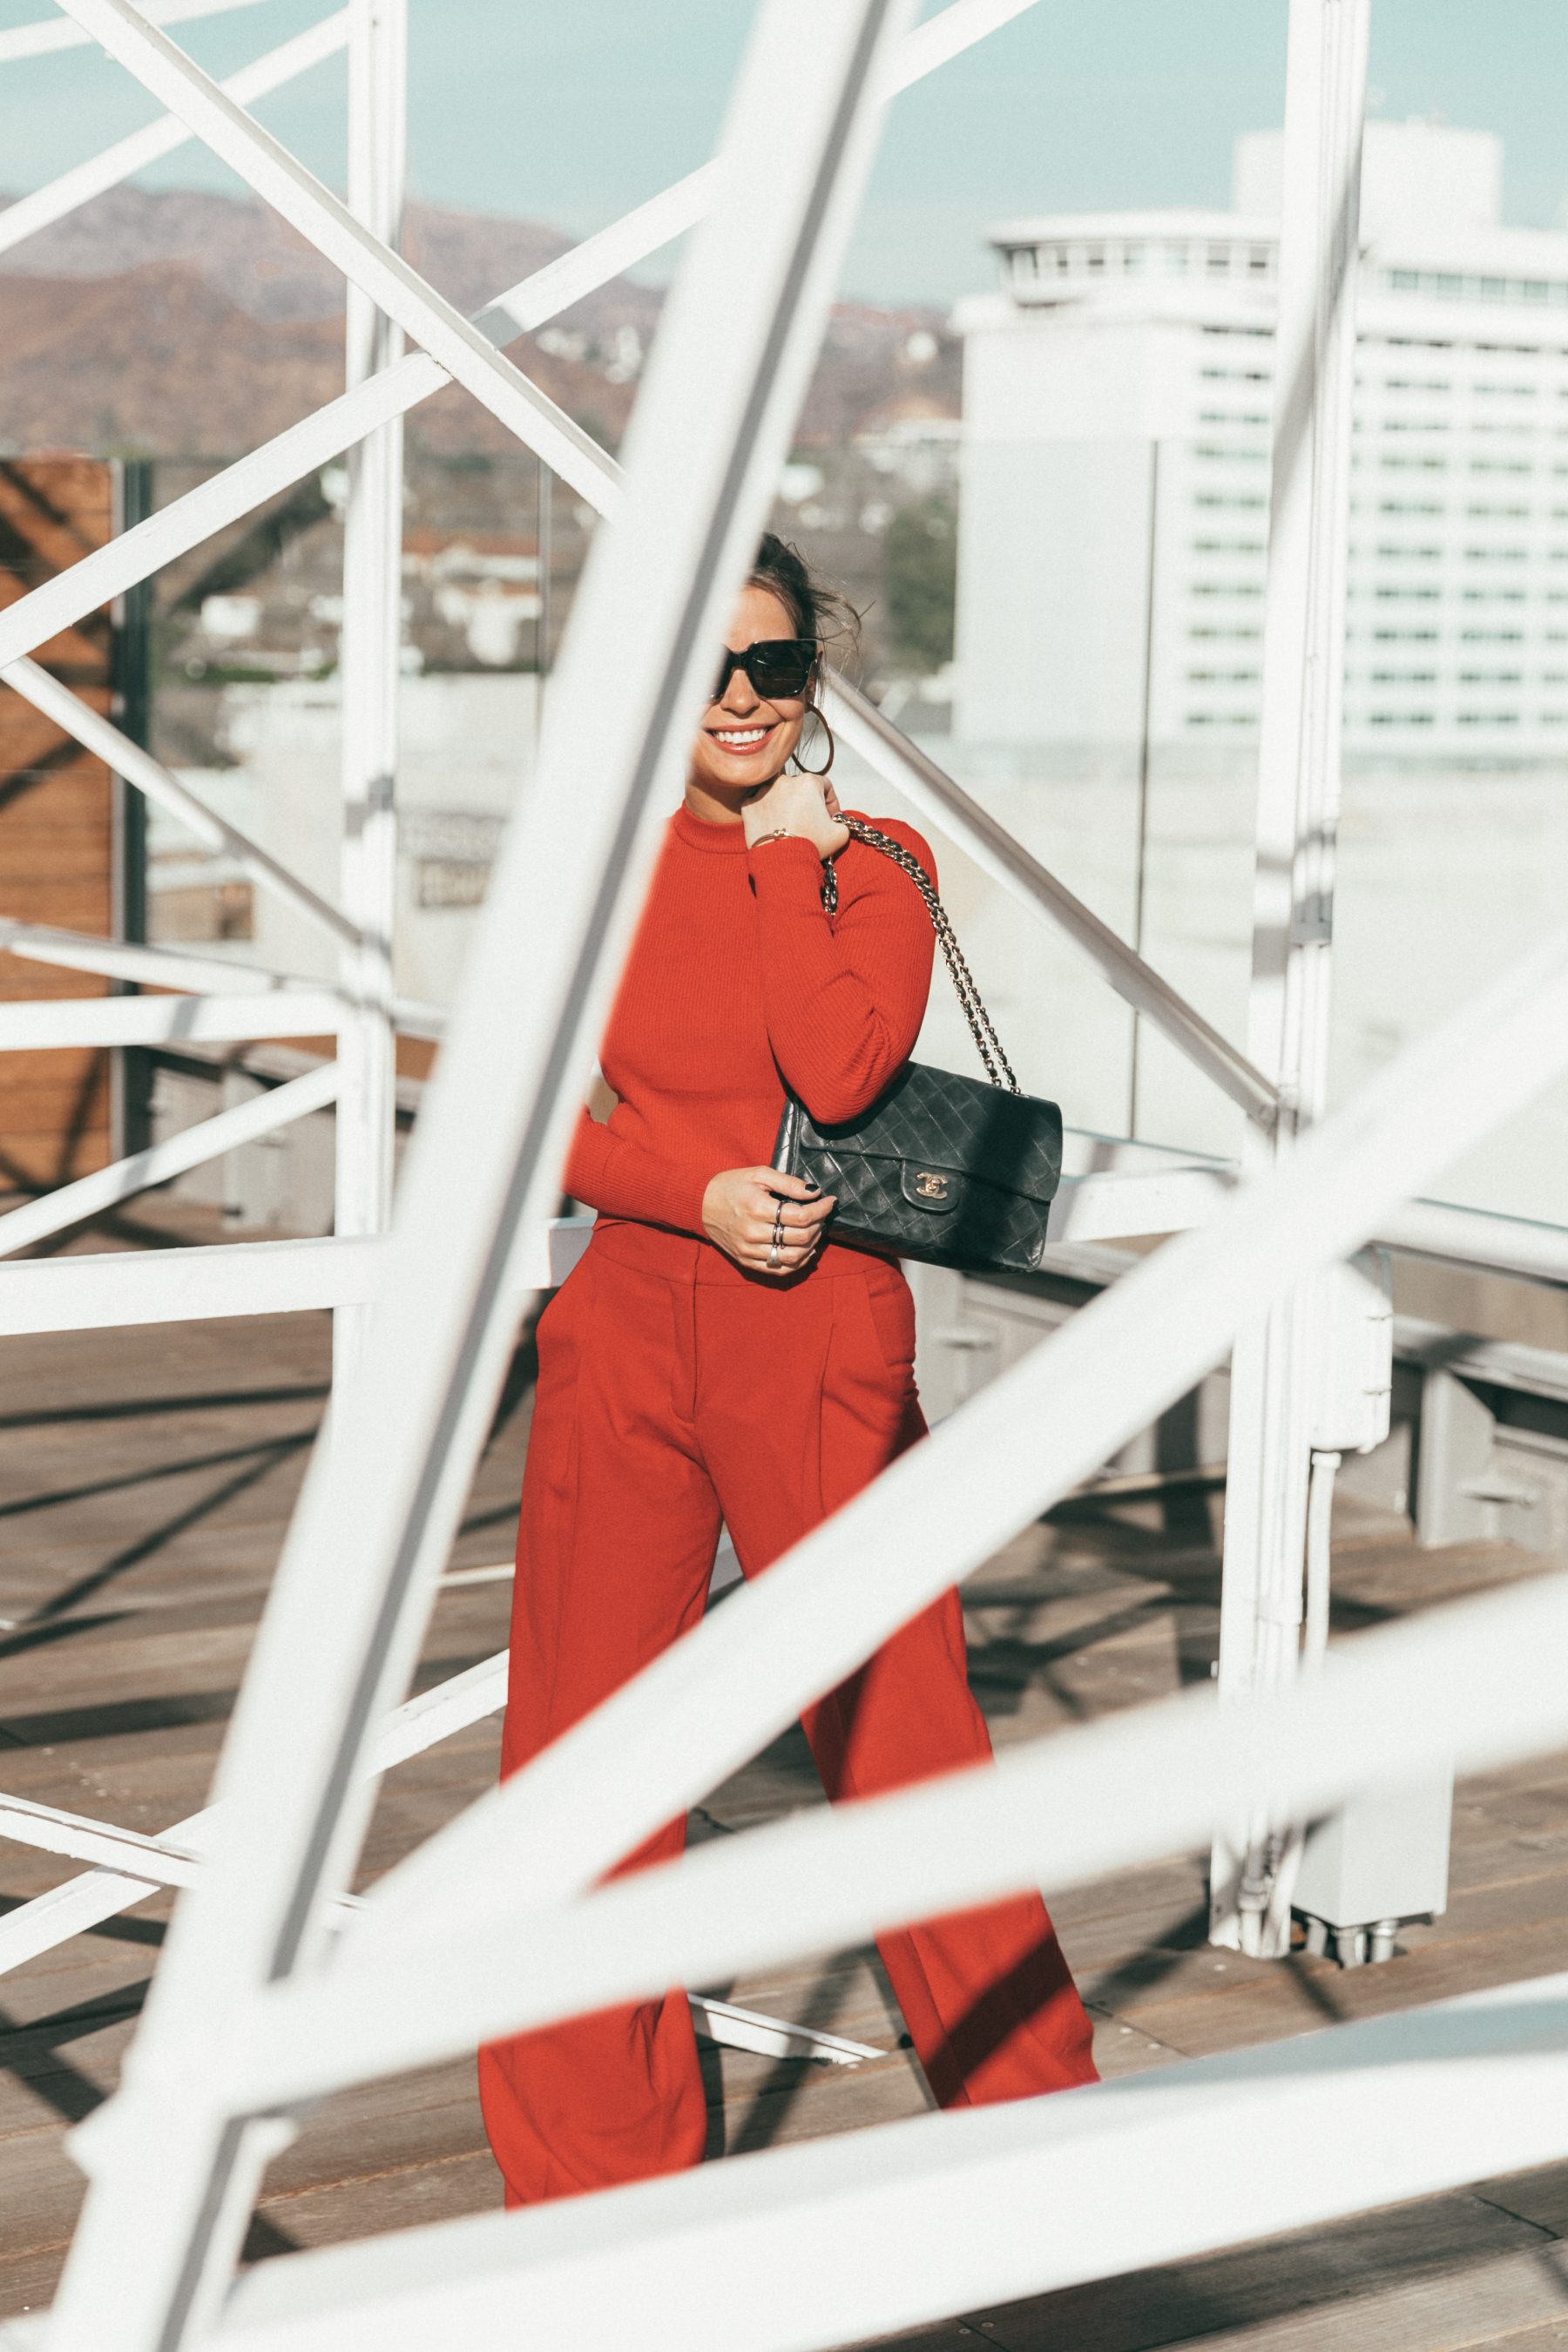 total_red_look-hm_studio-outfit-roosevelt_hotel-los_angeles-la-collage_vintage-street_style-chanel_bag-190